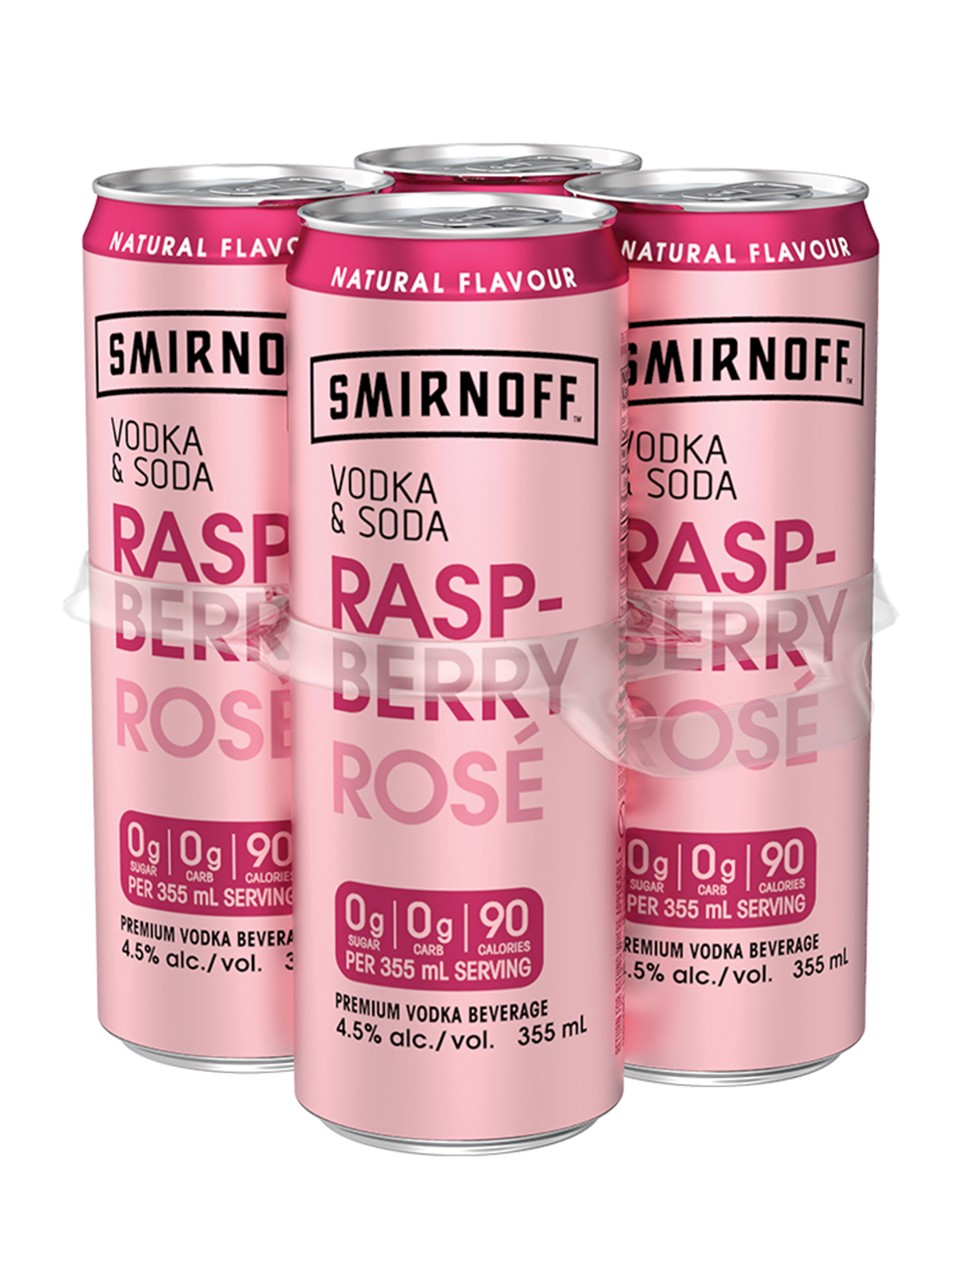 Smirnoff Vodka & Soda Raspberry Rose from LCBO